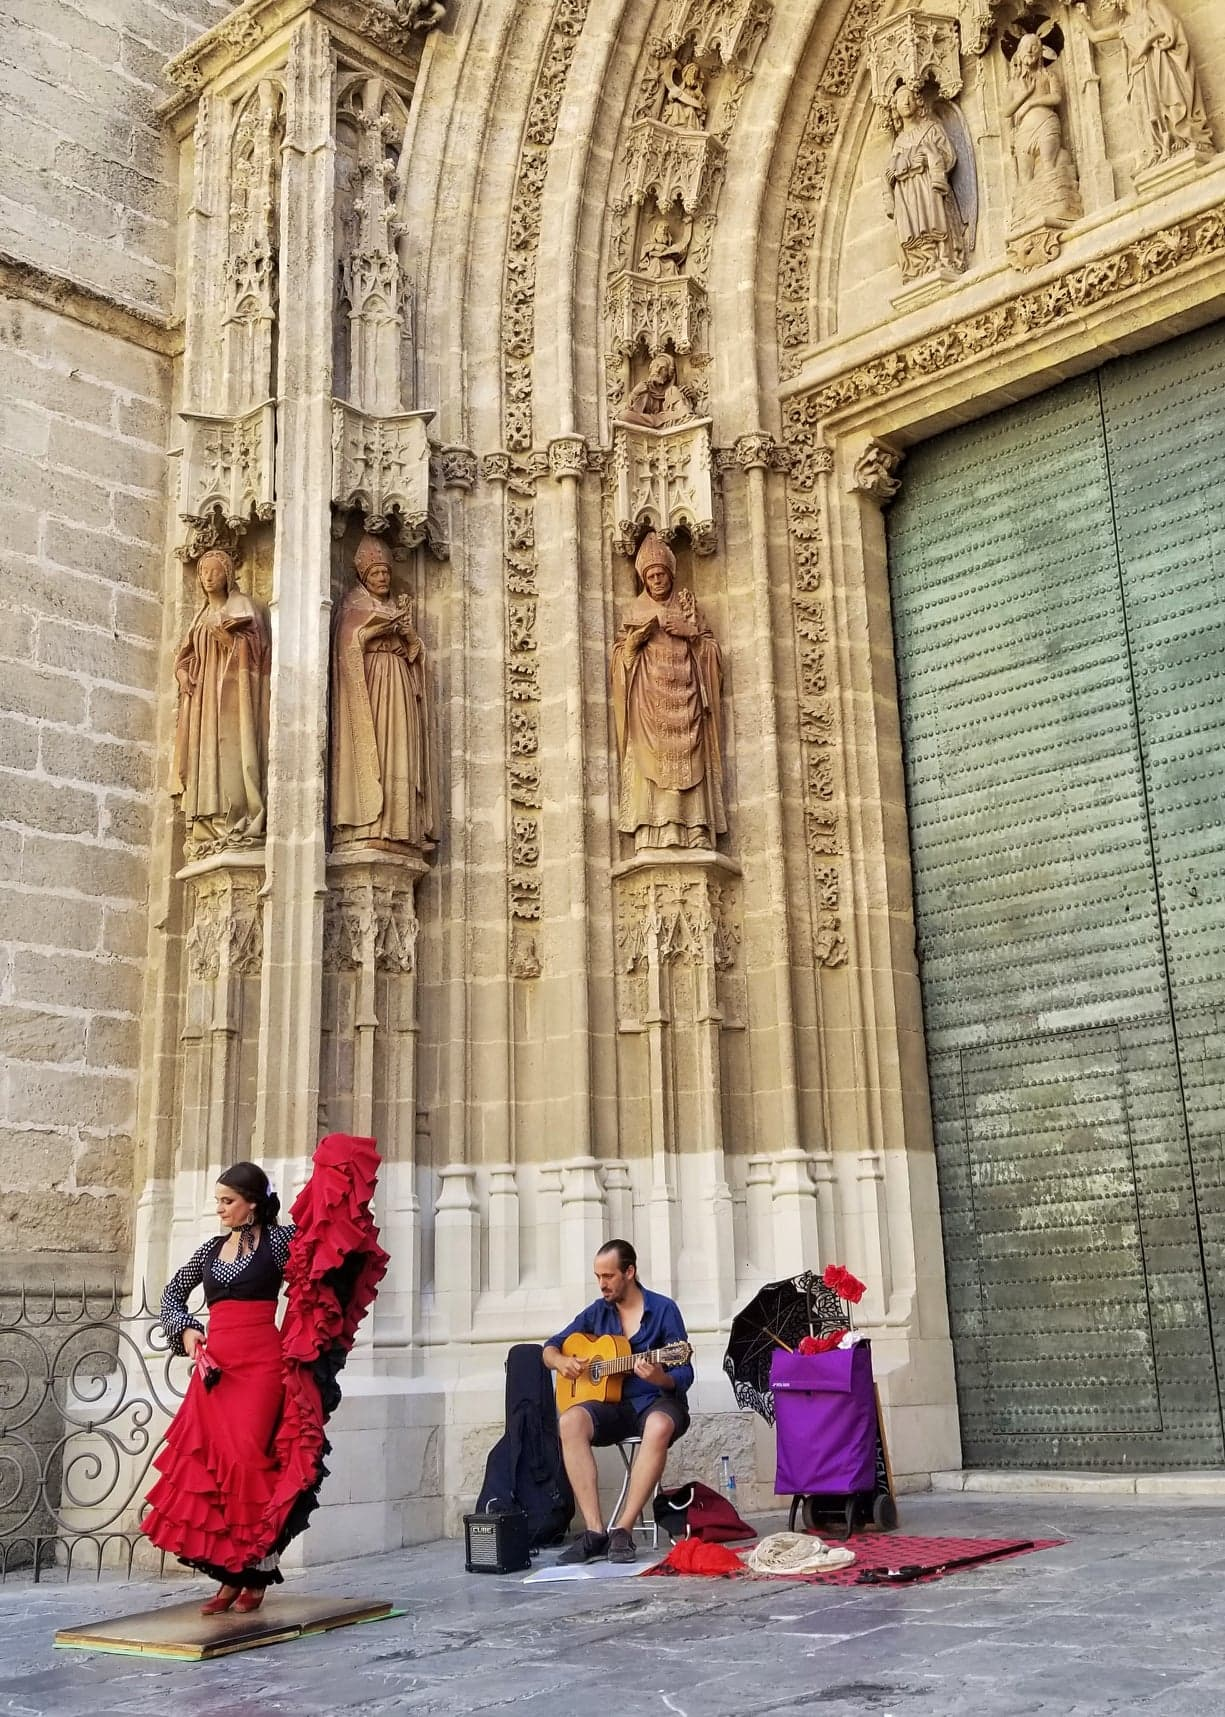 Seville itinerary - Flamenco Street Performance